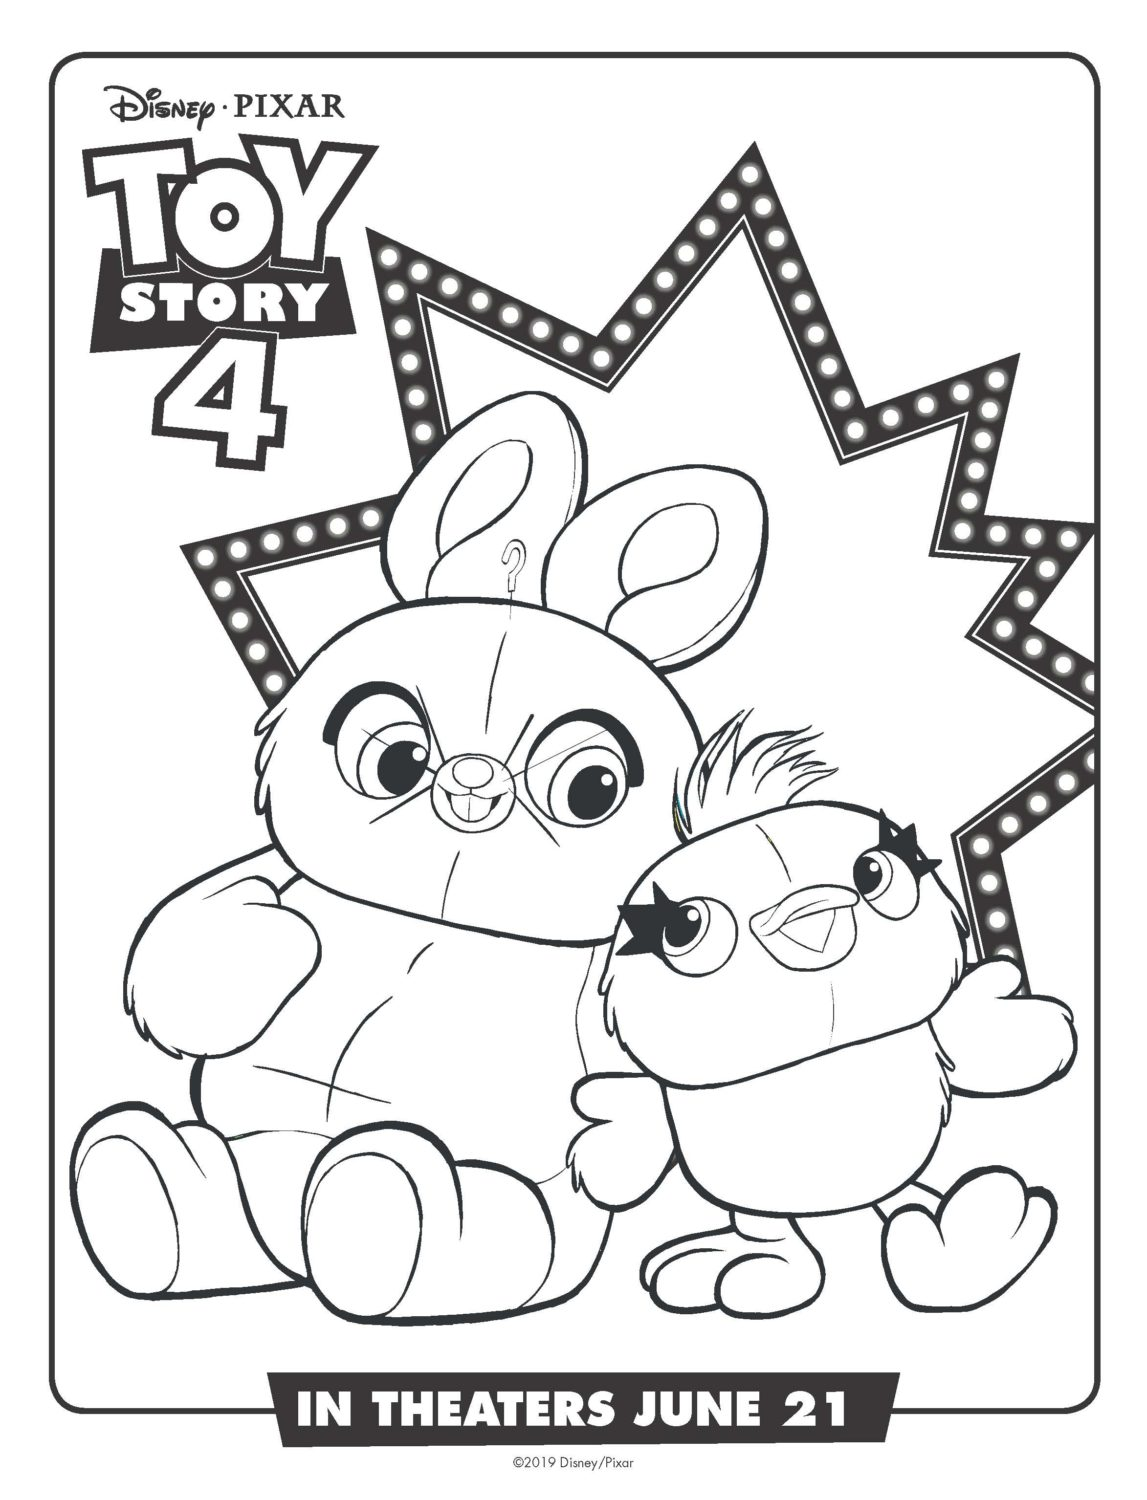 Free Printable Toy Story 4 Coloring Pages and Activity ...